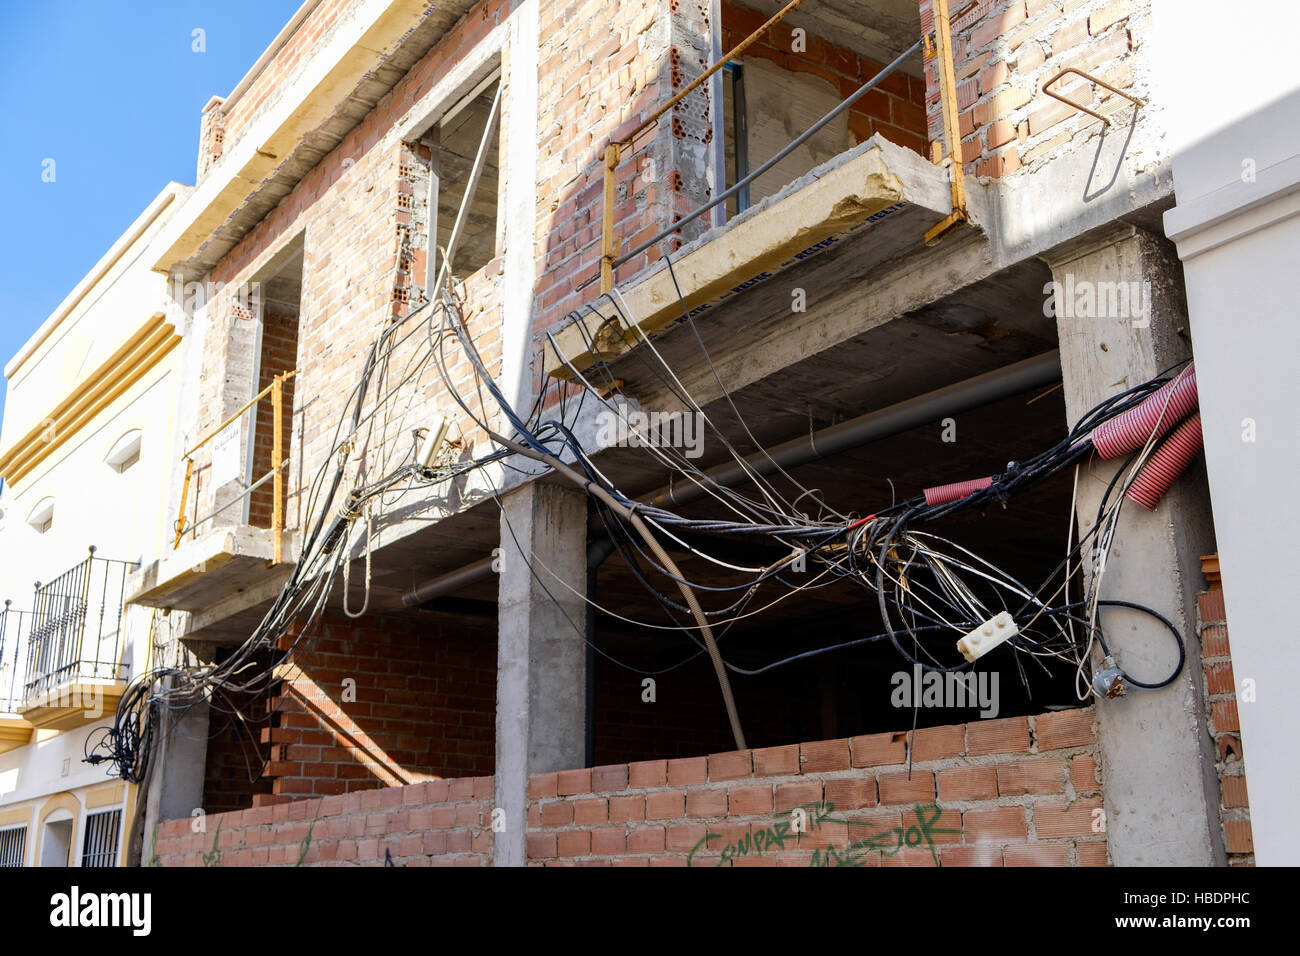 hight resolution of unsafe electrical wiring tangled up outside a house under development